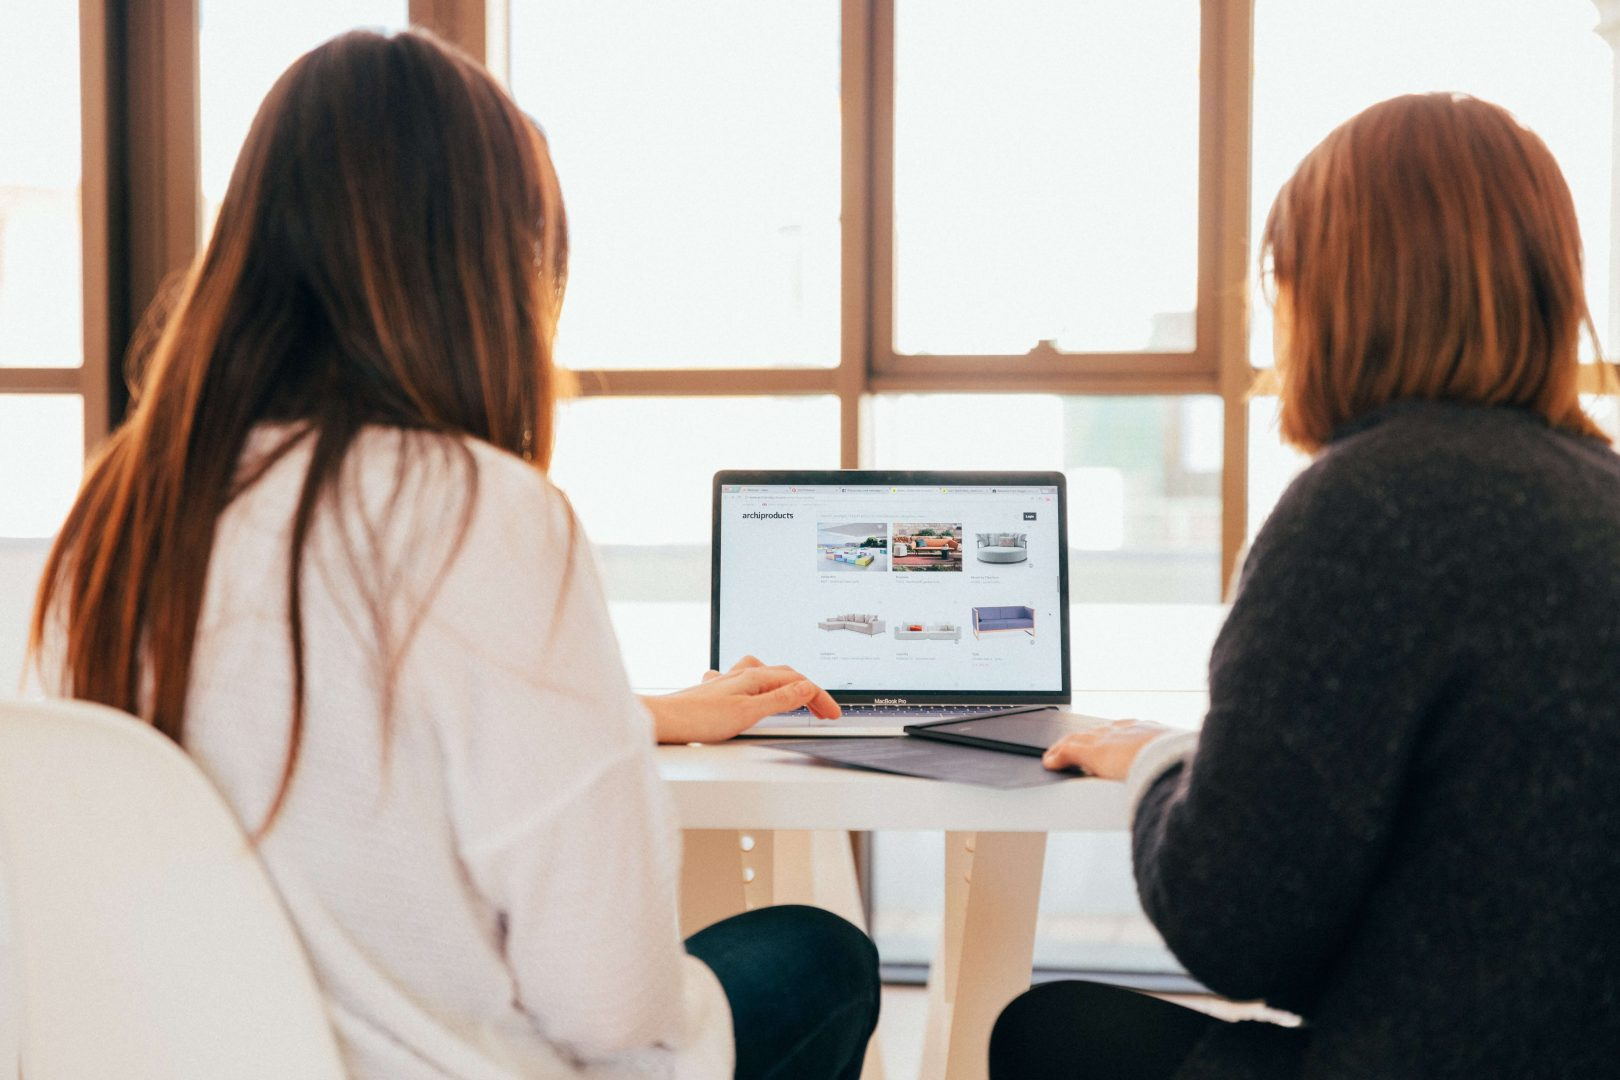 WordPress vs. Wix? When it comes to finding an experienced pro ready to tailor your website, you can't go wrong with neither of them.